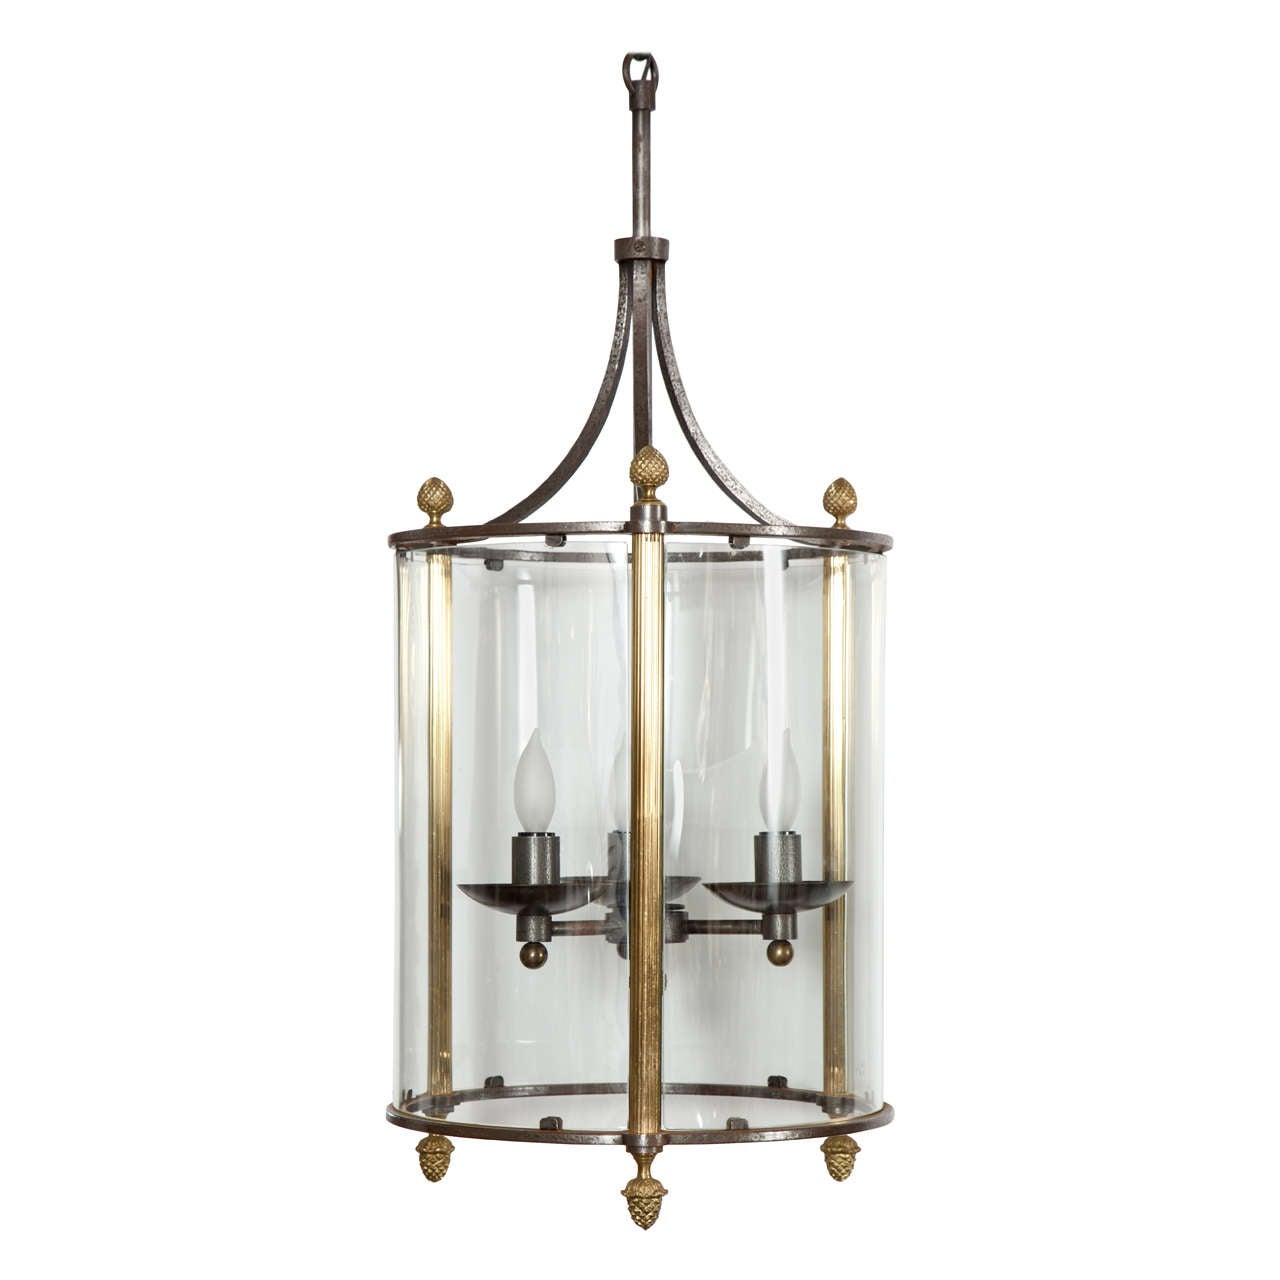 Brass and Bronze Lantern For Sale